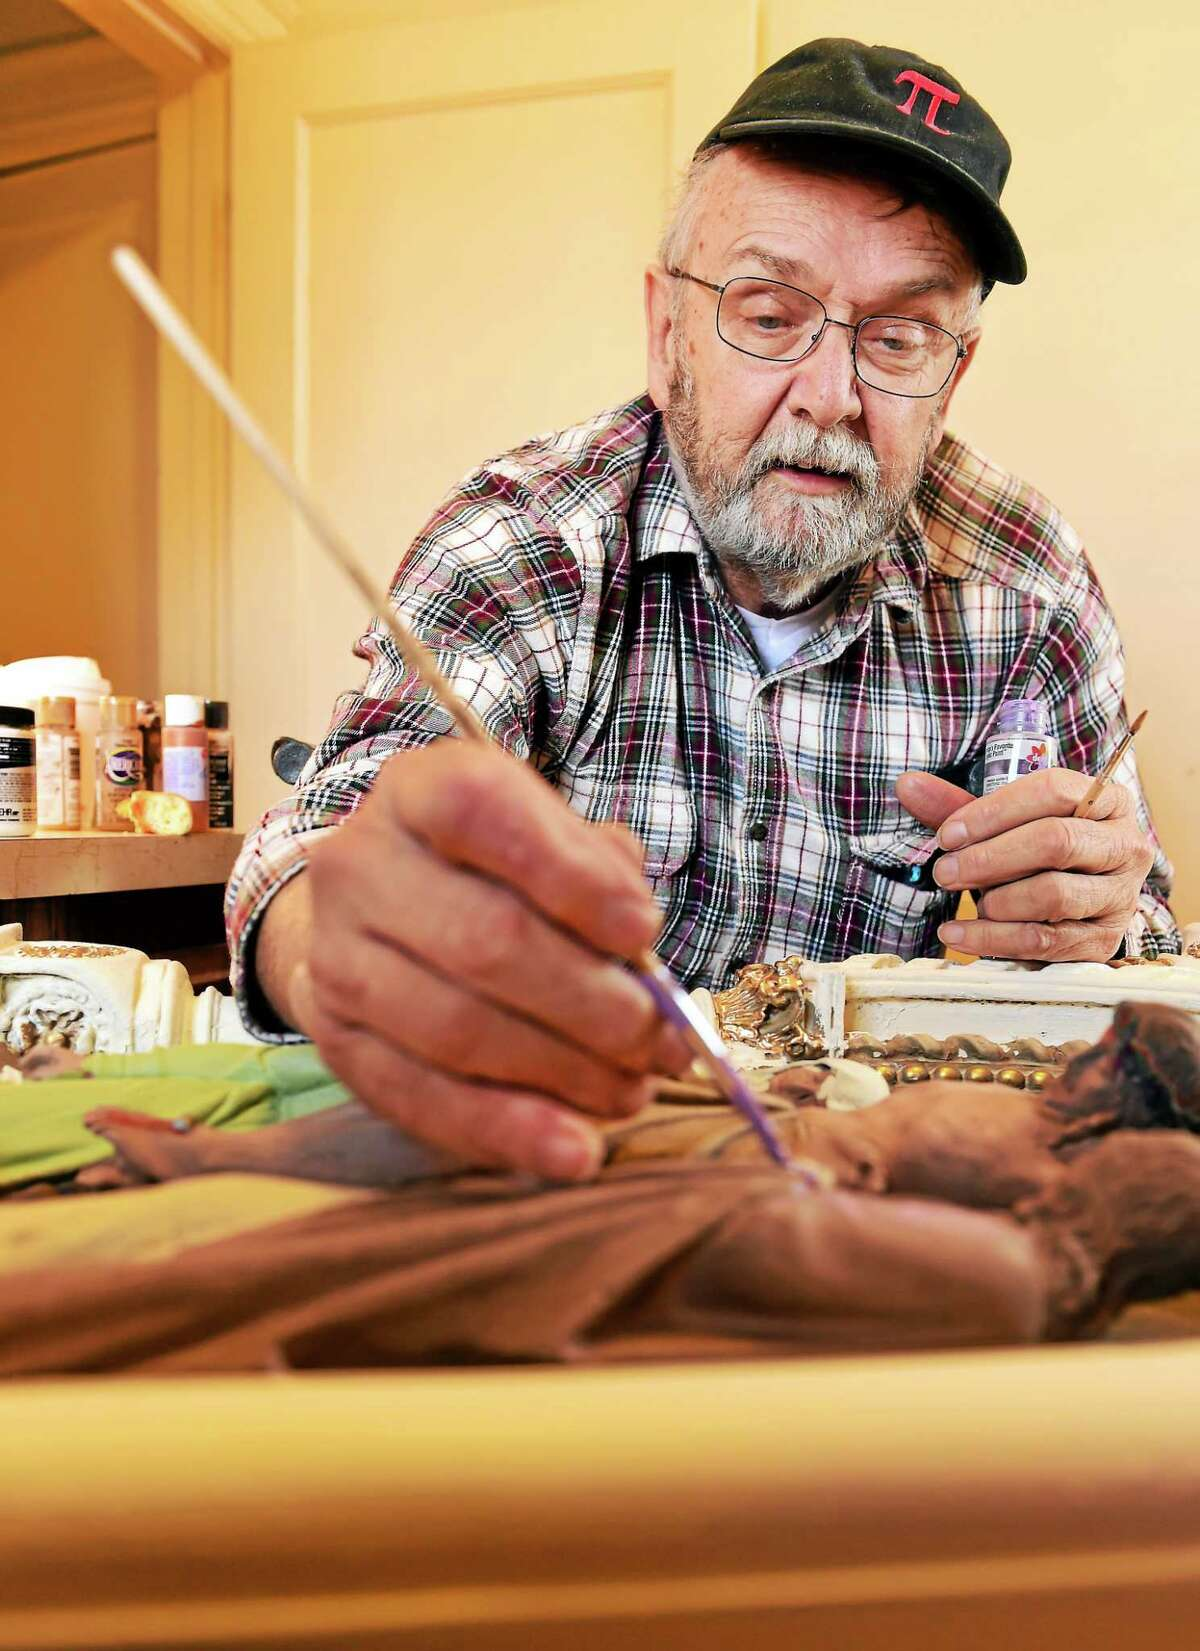 Edwin Norse, owner of Saint Joseph's Statue Repair of Middletown, 68, demonstrates his patient brush strokes on a restoration of a Station of the Cross at the St. Ann Roman Catholic Church on Dixwell Ave. in Hamden, Tuesday, March 31, 2015. He pushes through his own pain to restore life to objects that are dying. Methodically, with bent and painful fingers, he restores and renews the plaster and concrete Stations of the Cross and statues.